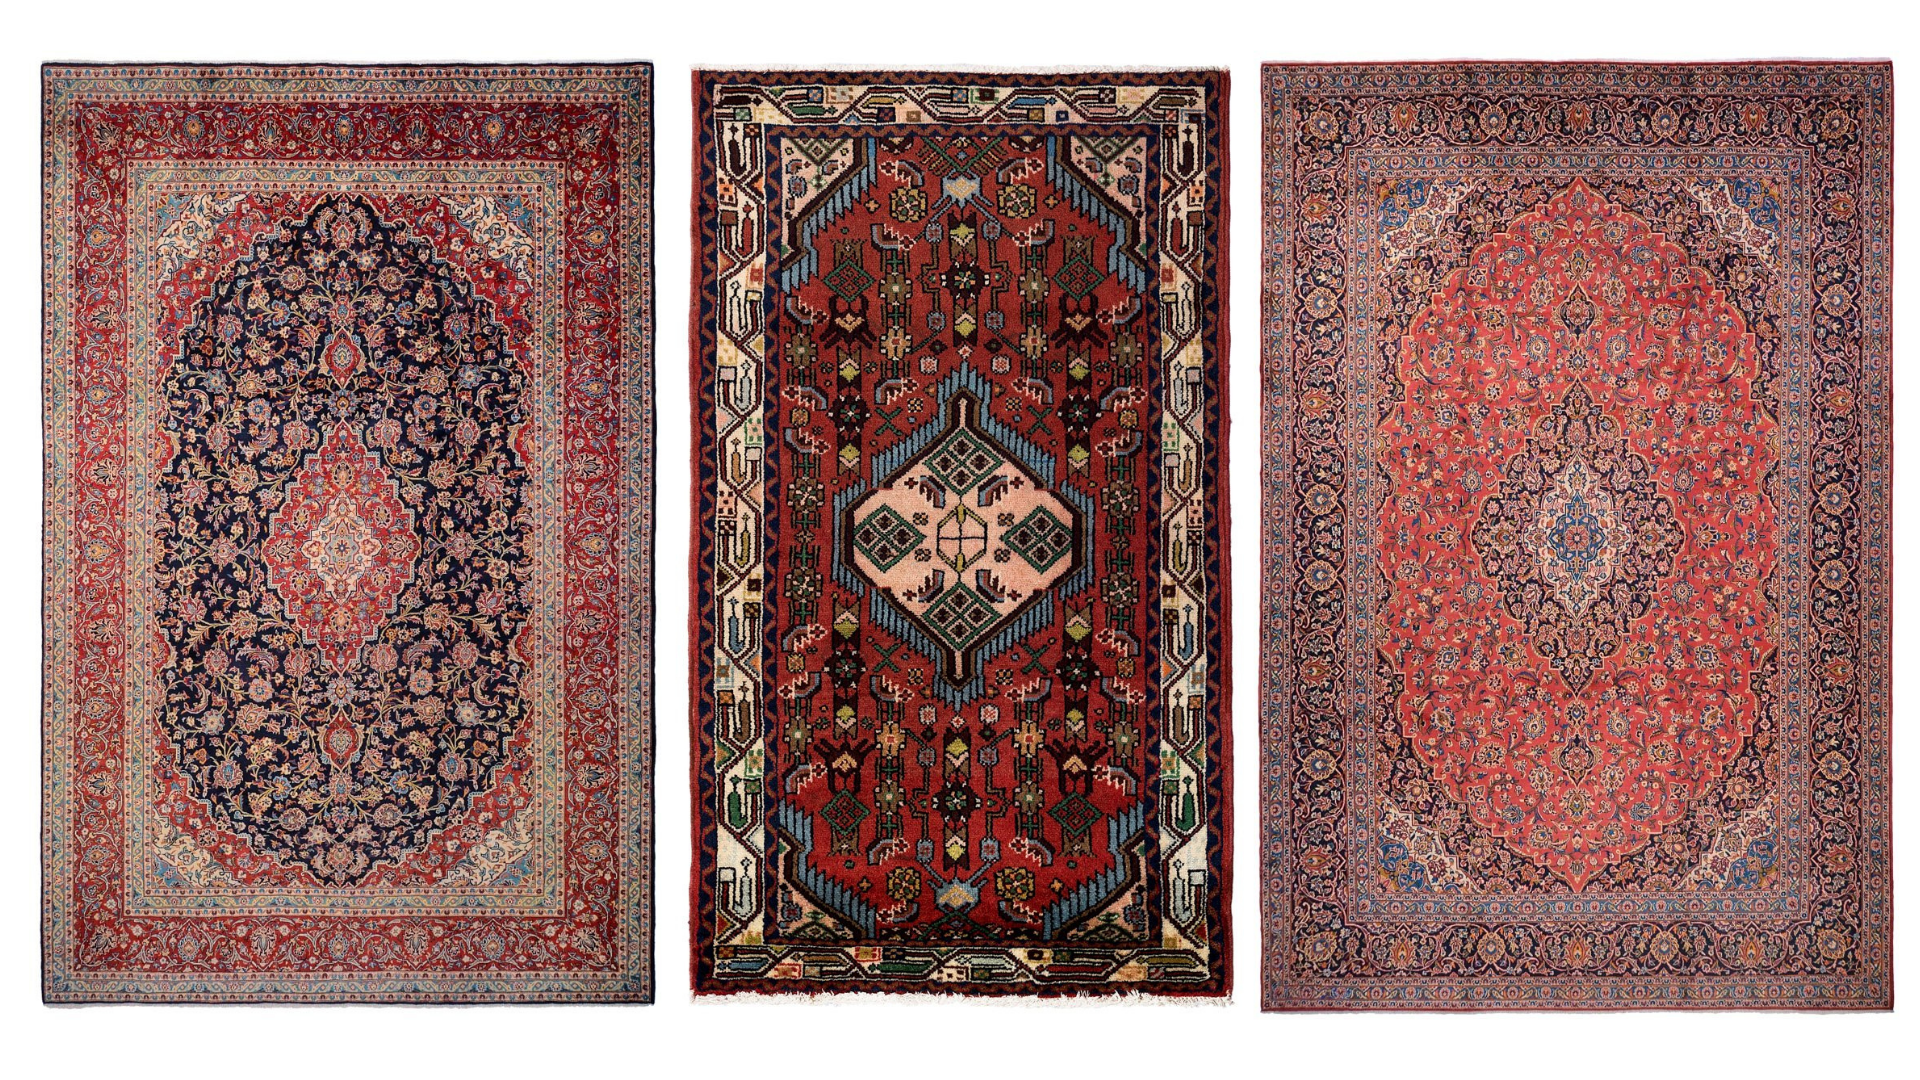 persian rugs, oriental rugs, home decor, home accessories, interior design, interior decor, hotel decor, hotel interiors, interior inspiration, london rugs, uk rugs, rug collections